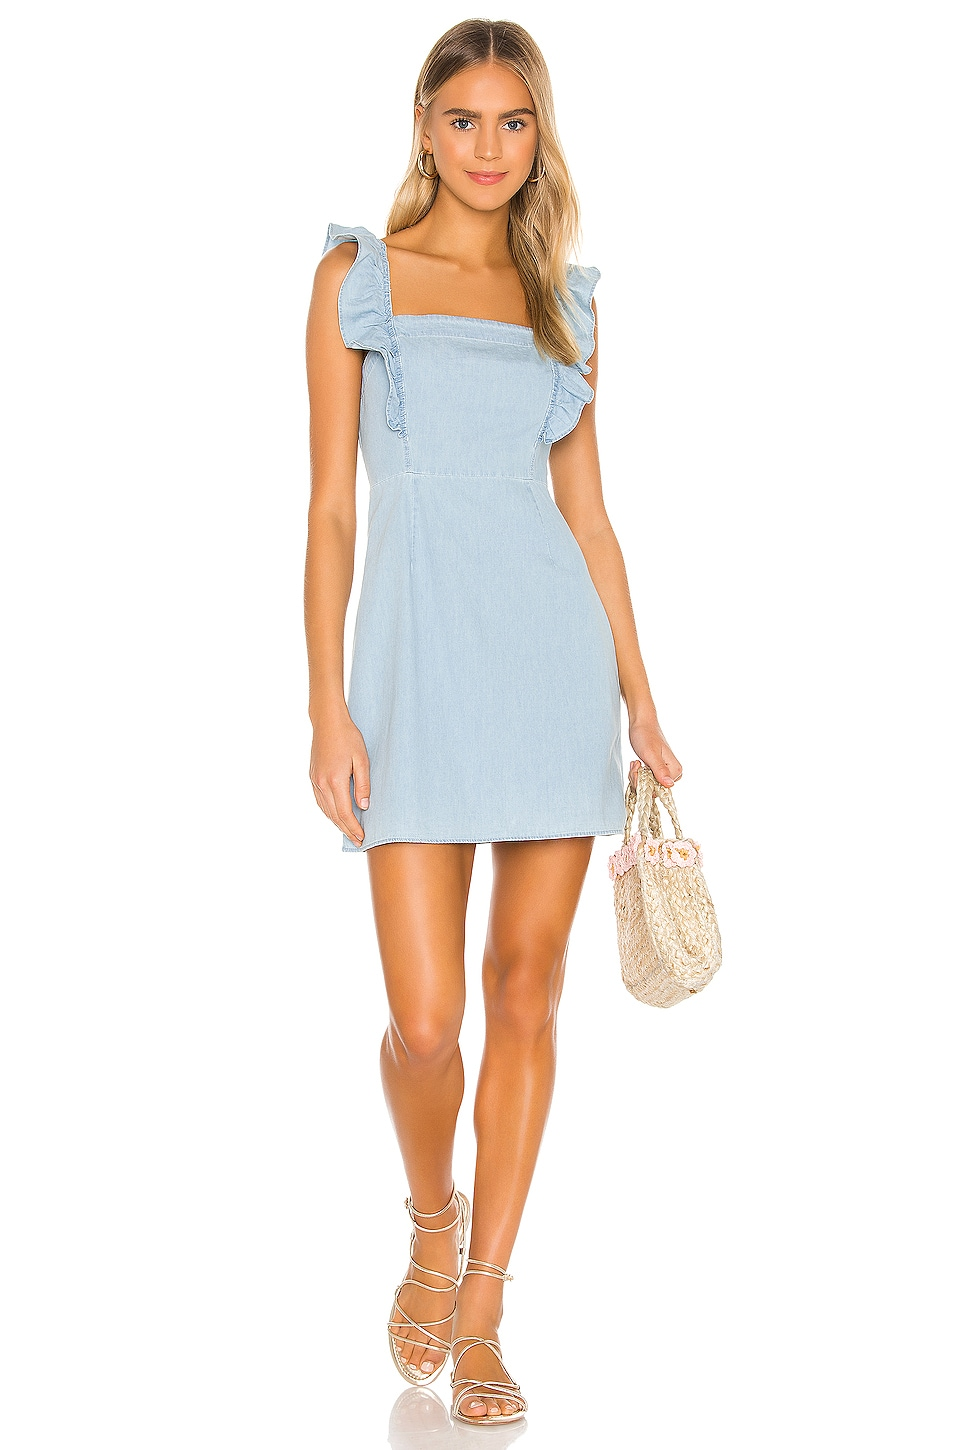 JACK by BB Dakota Chambray All Day Dress             BB Dakota                                                                                                       CA$ 110.94 14